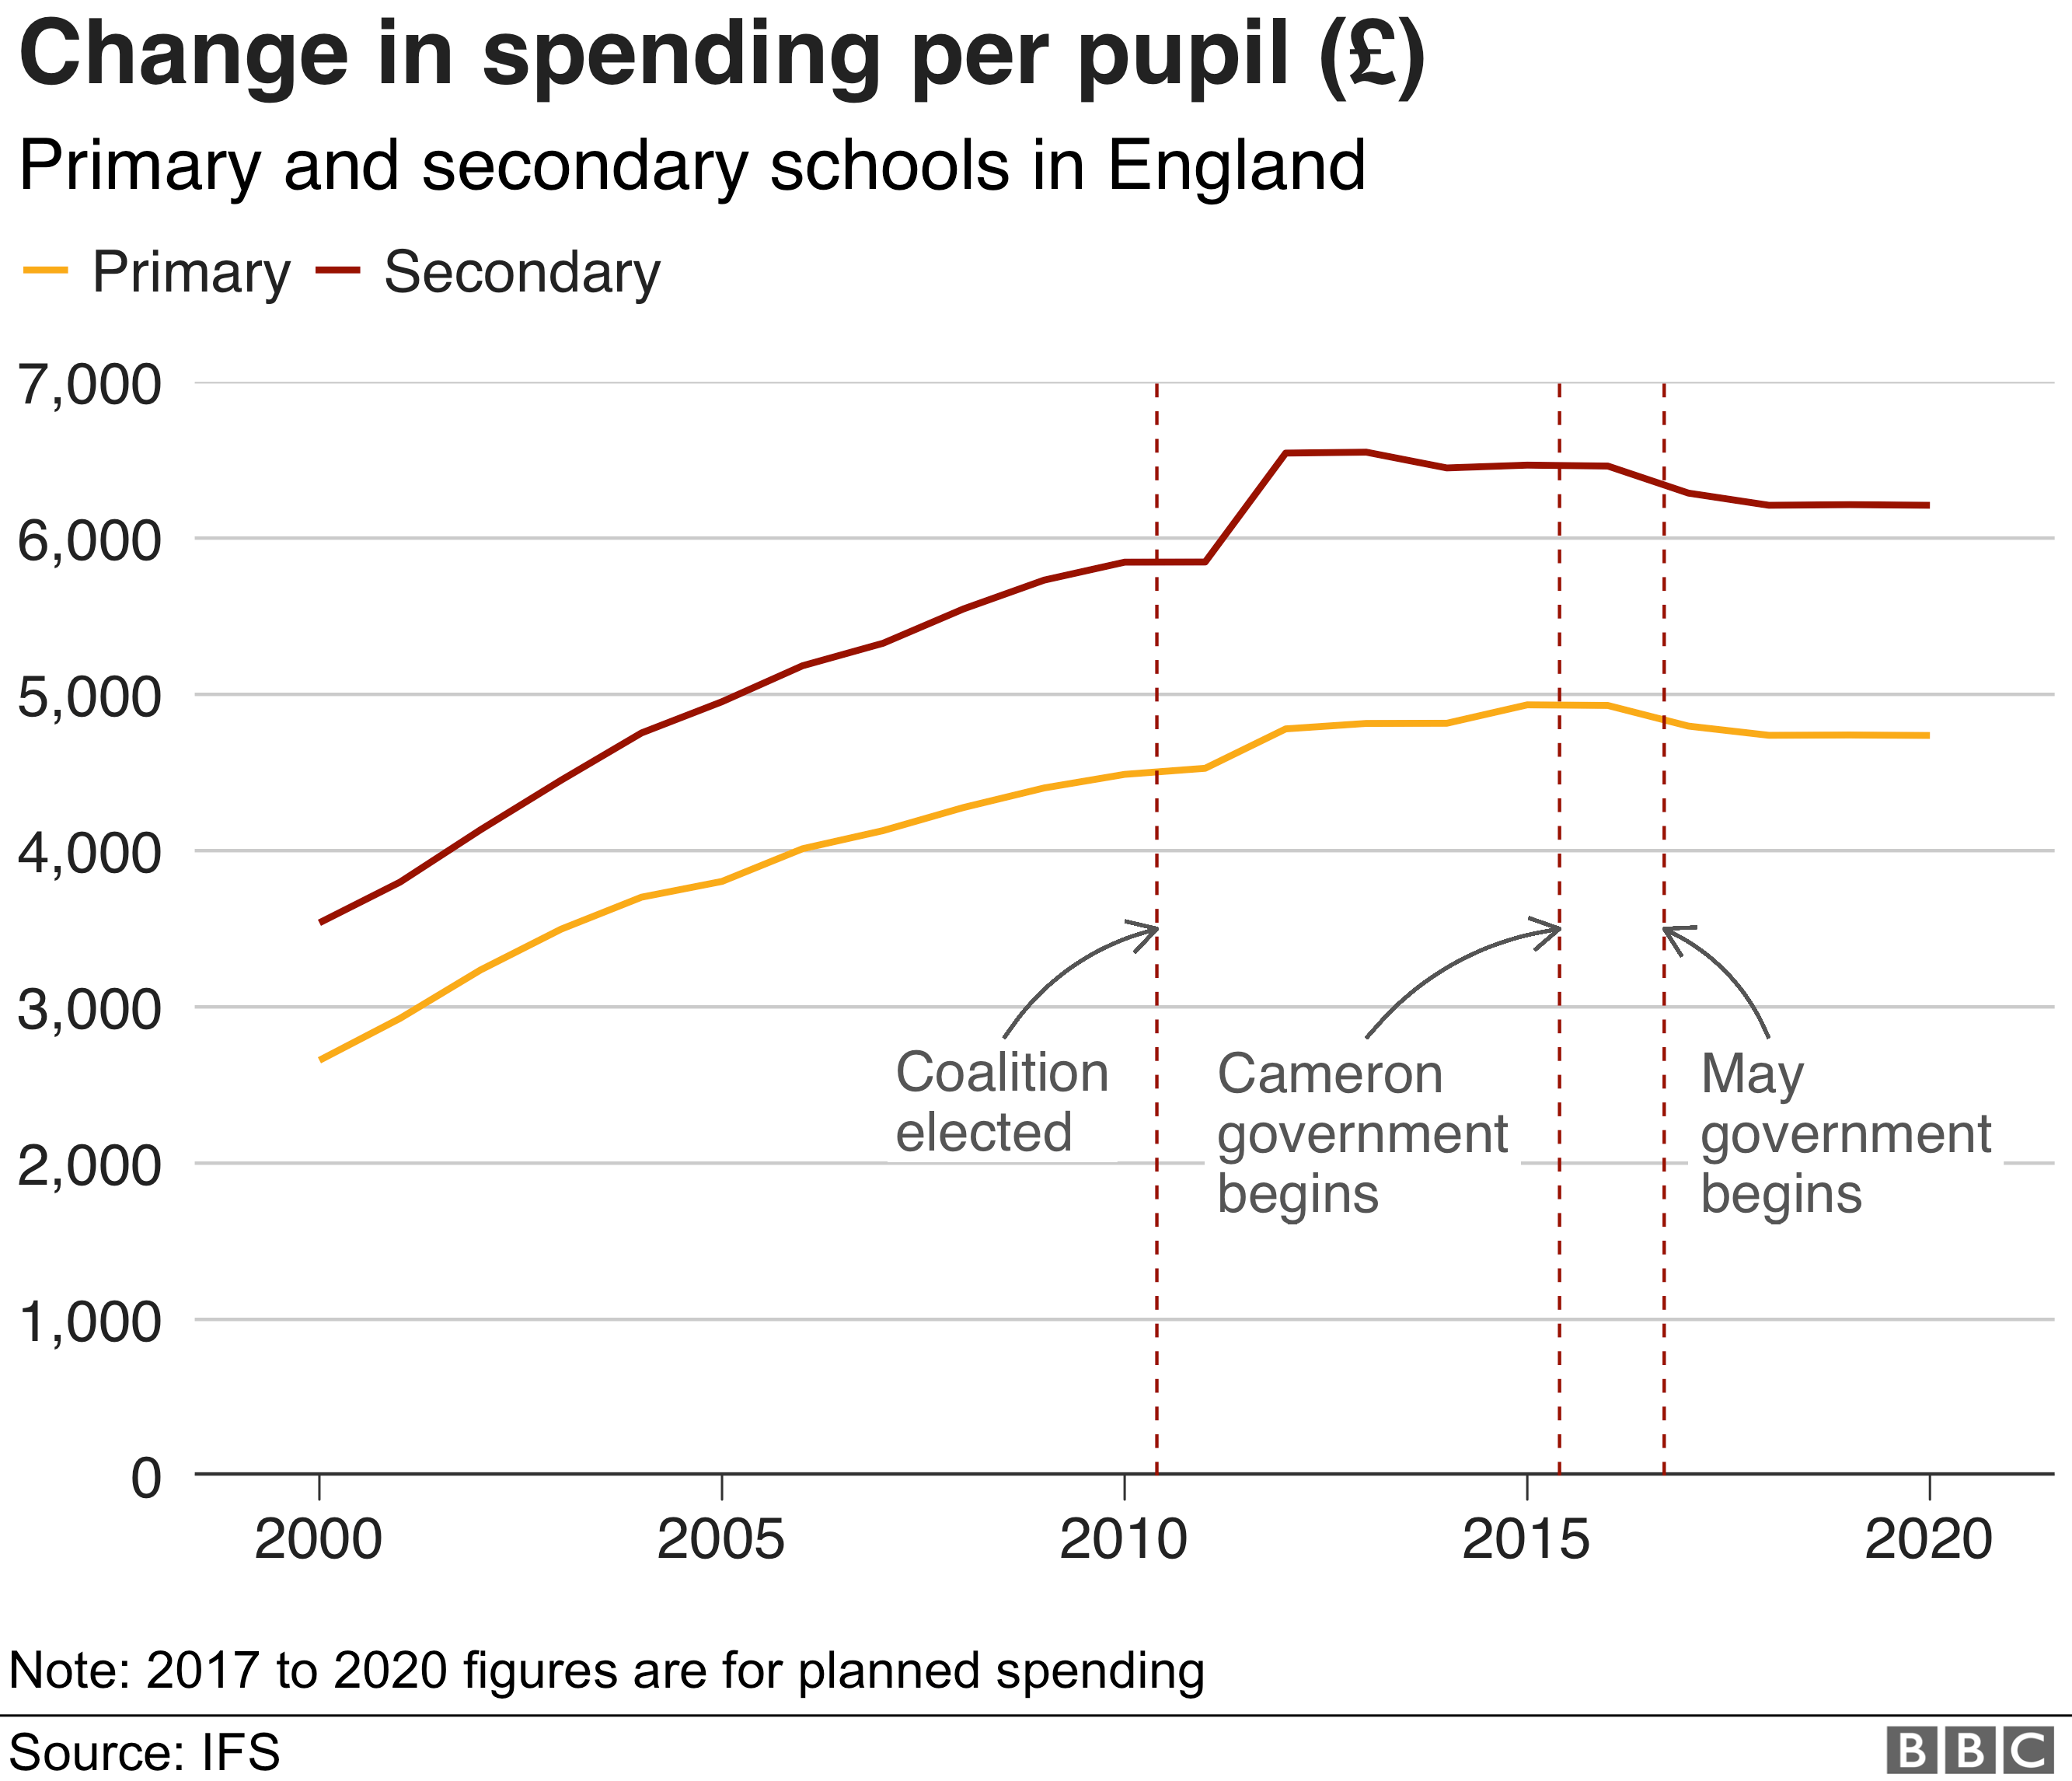 chart on changes in spending per pupil show spending was going up until Cameron 2015 government when it fell before flatlining